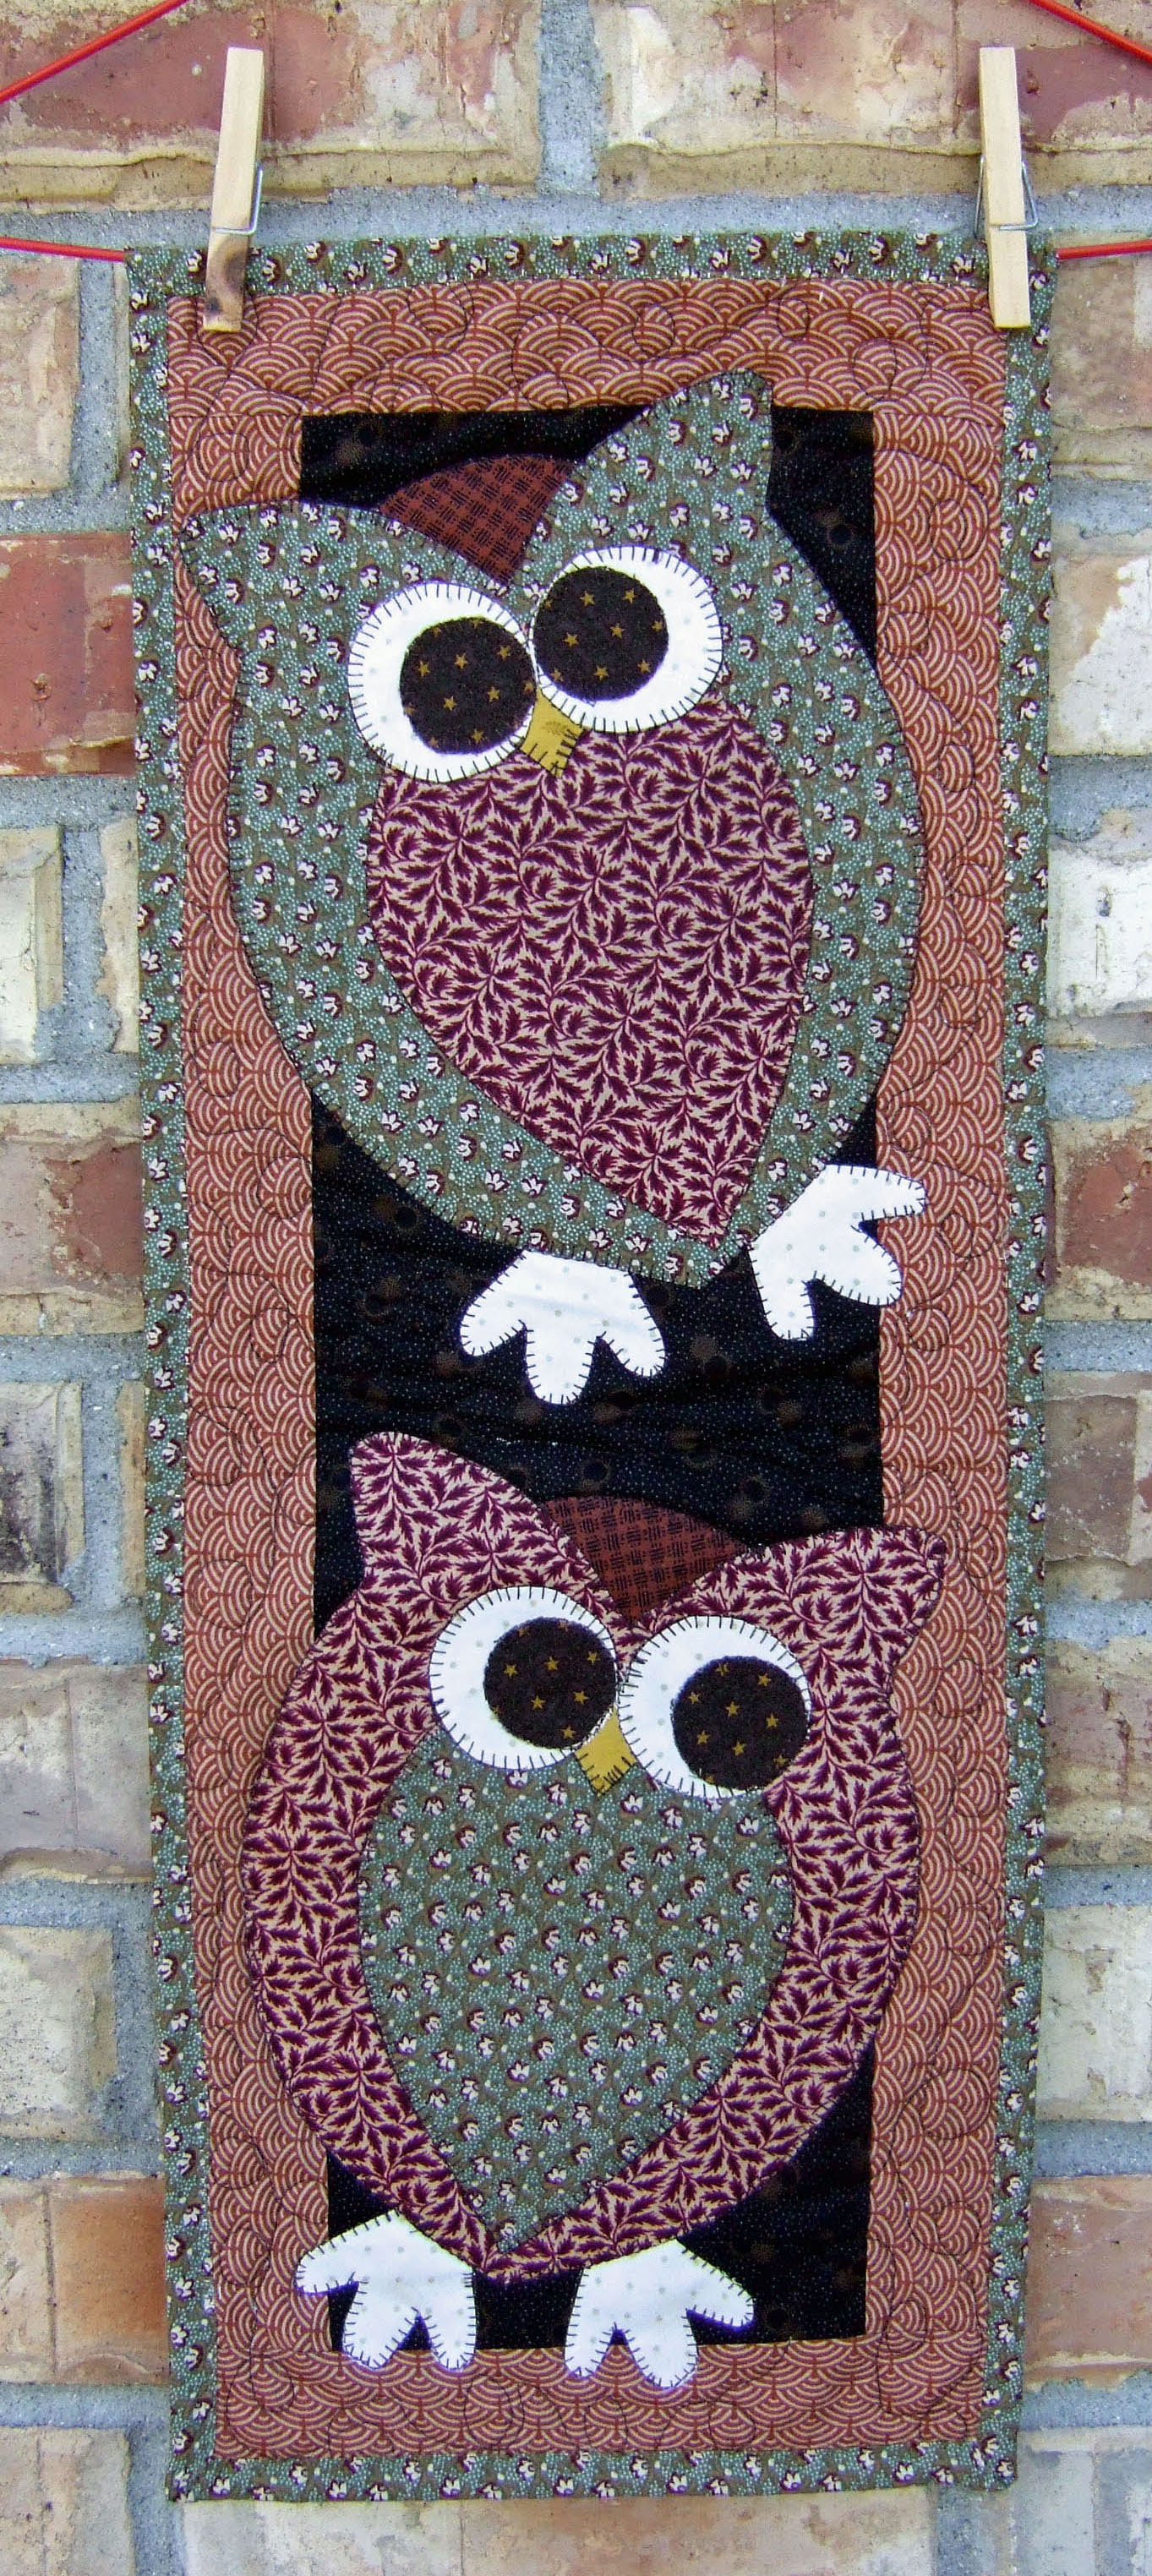 Skinnies:  What a Hoot!